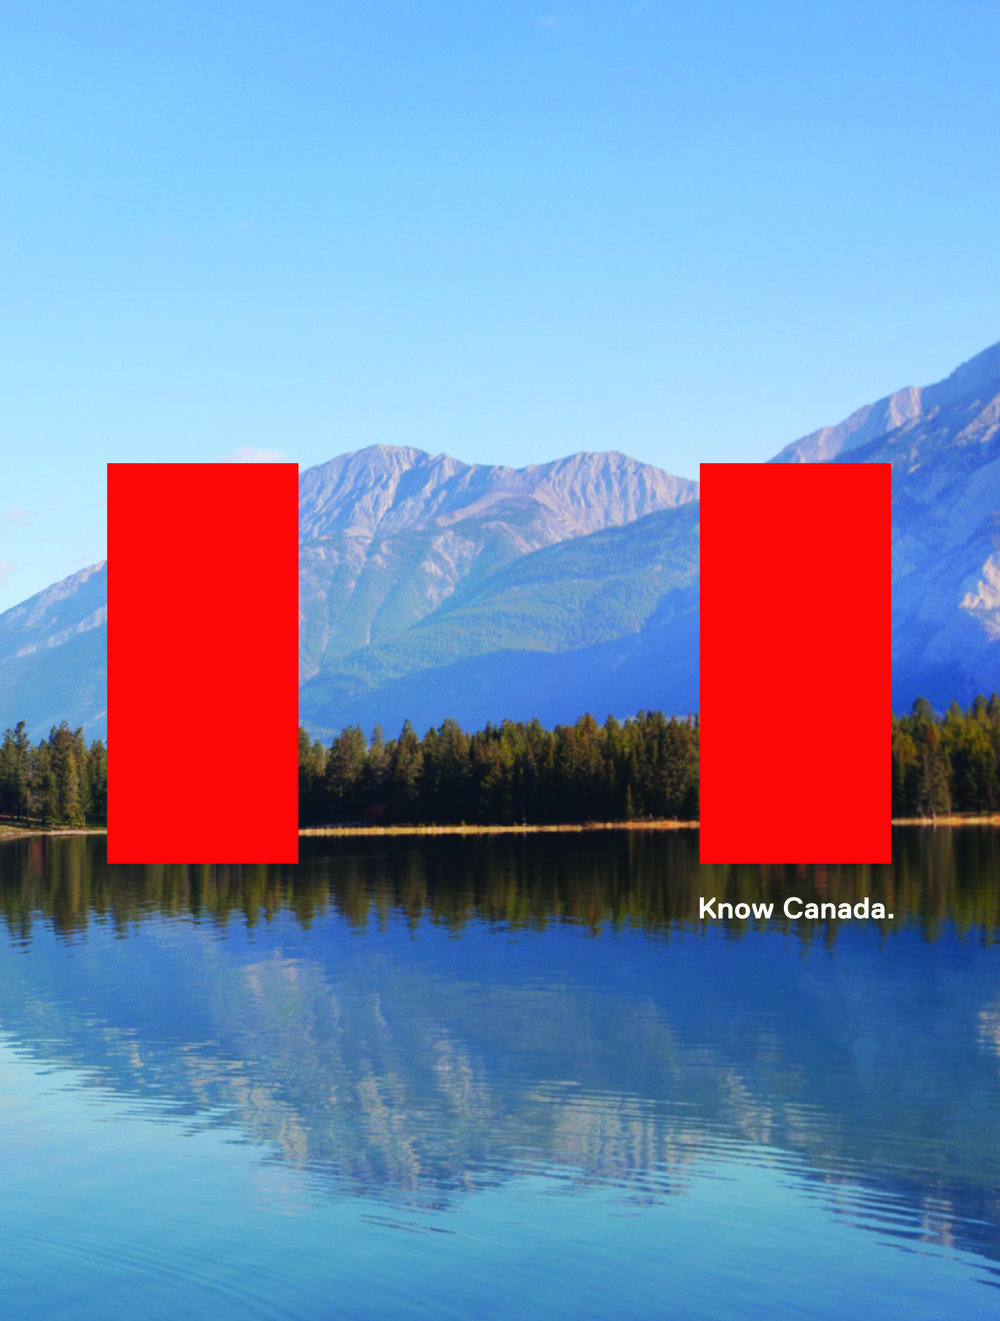 'Know Canada', 2012